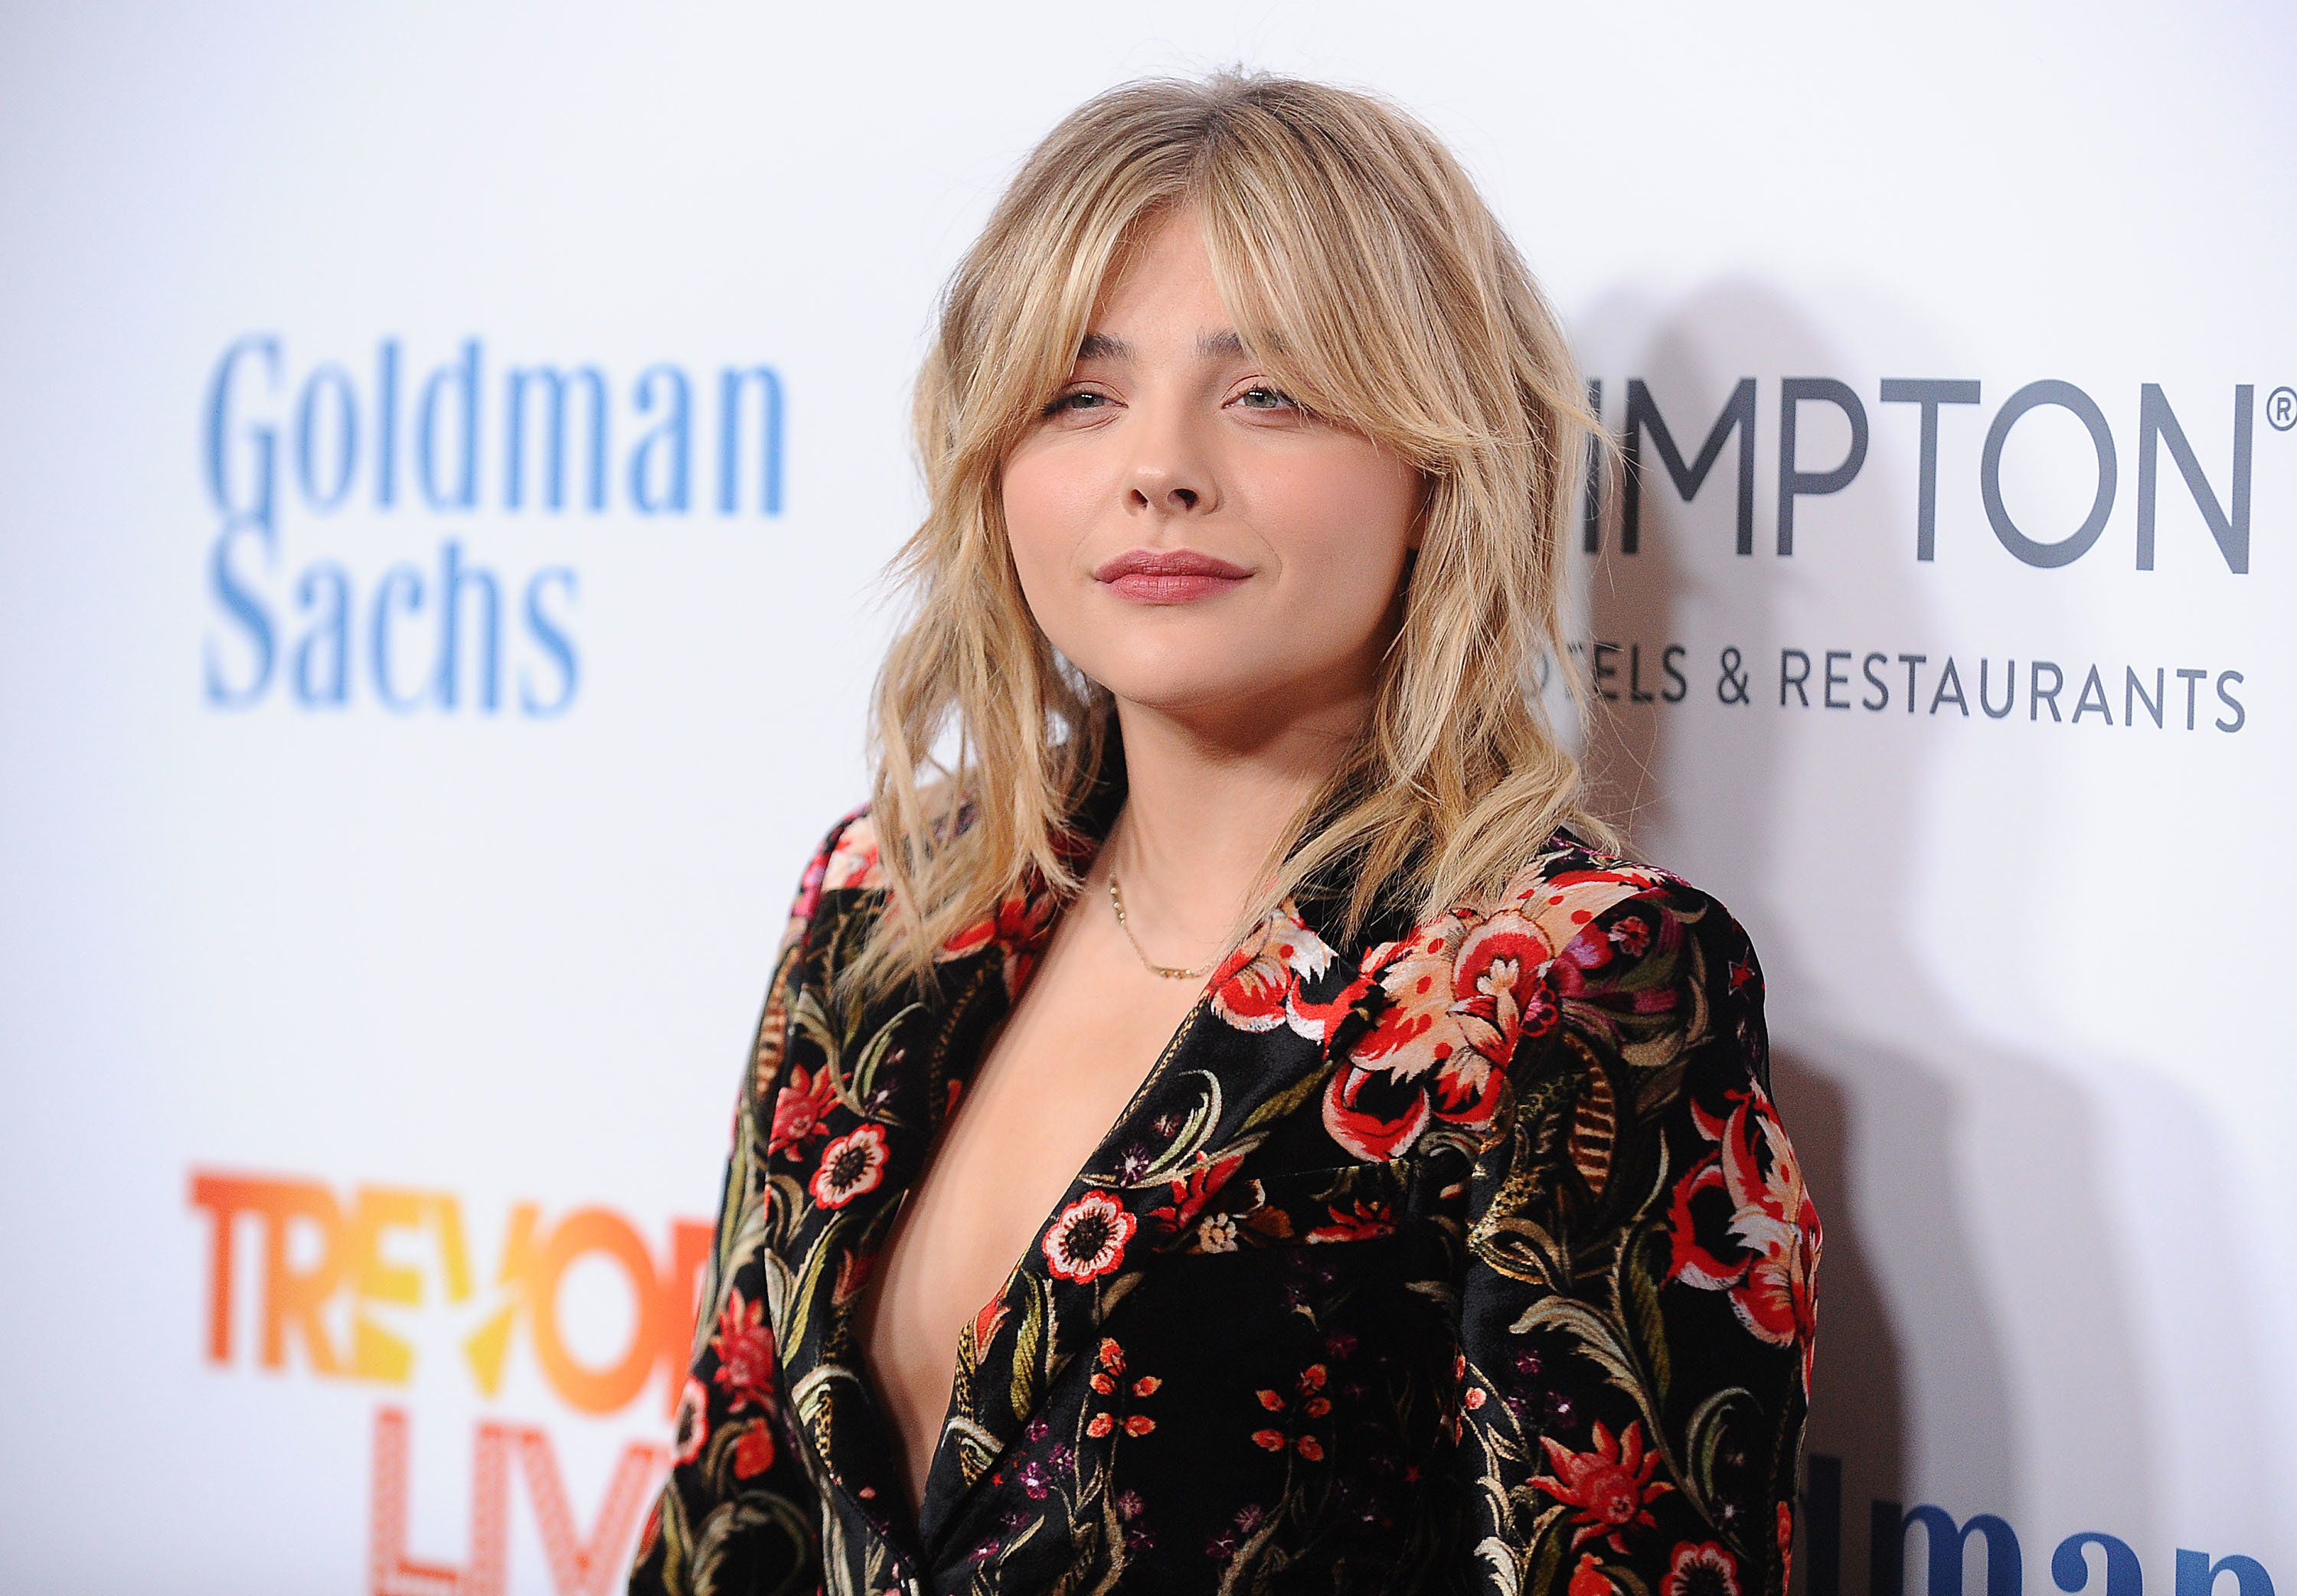 BEVERLY HILLS, CA - DECEMBER 04:  Actress Chloe Grace Moretz attends the TrevorLIVE Los Angeles 2016 fundraiser at The Beverly Hilton Hotel on December 4, 2016 in Beverly Hills, California.  (Photo by Jason LaVeris/FilmMagic)